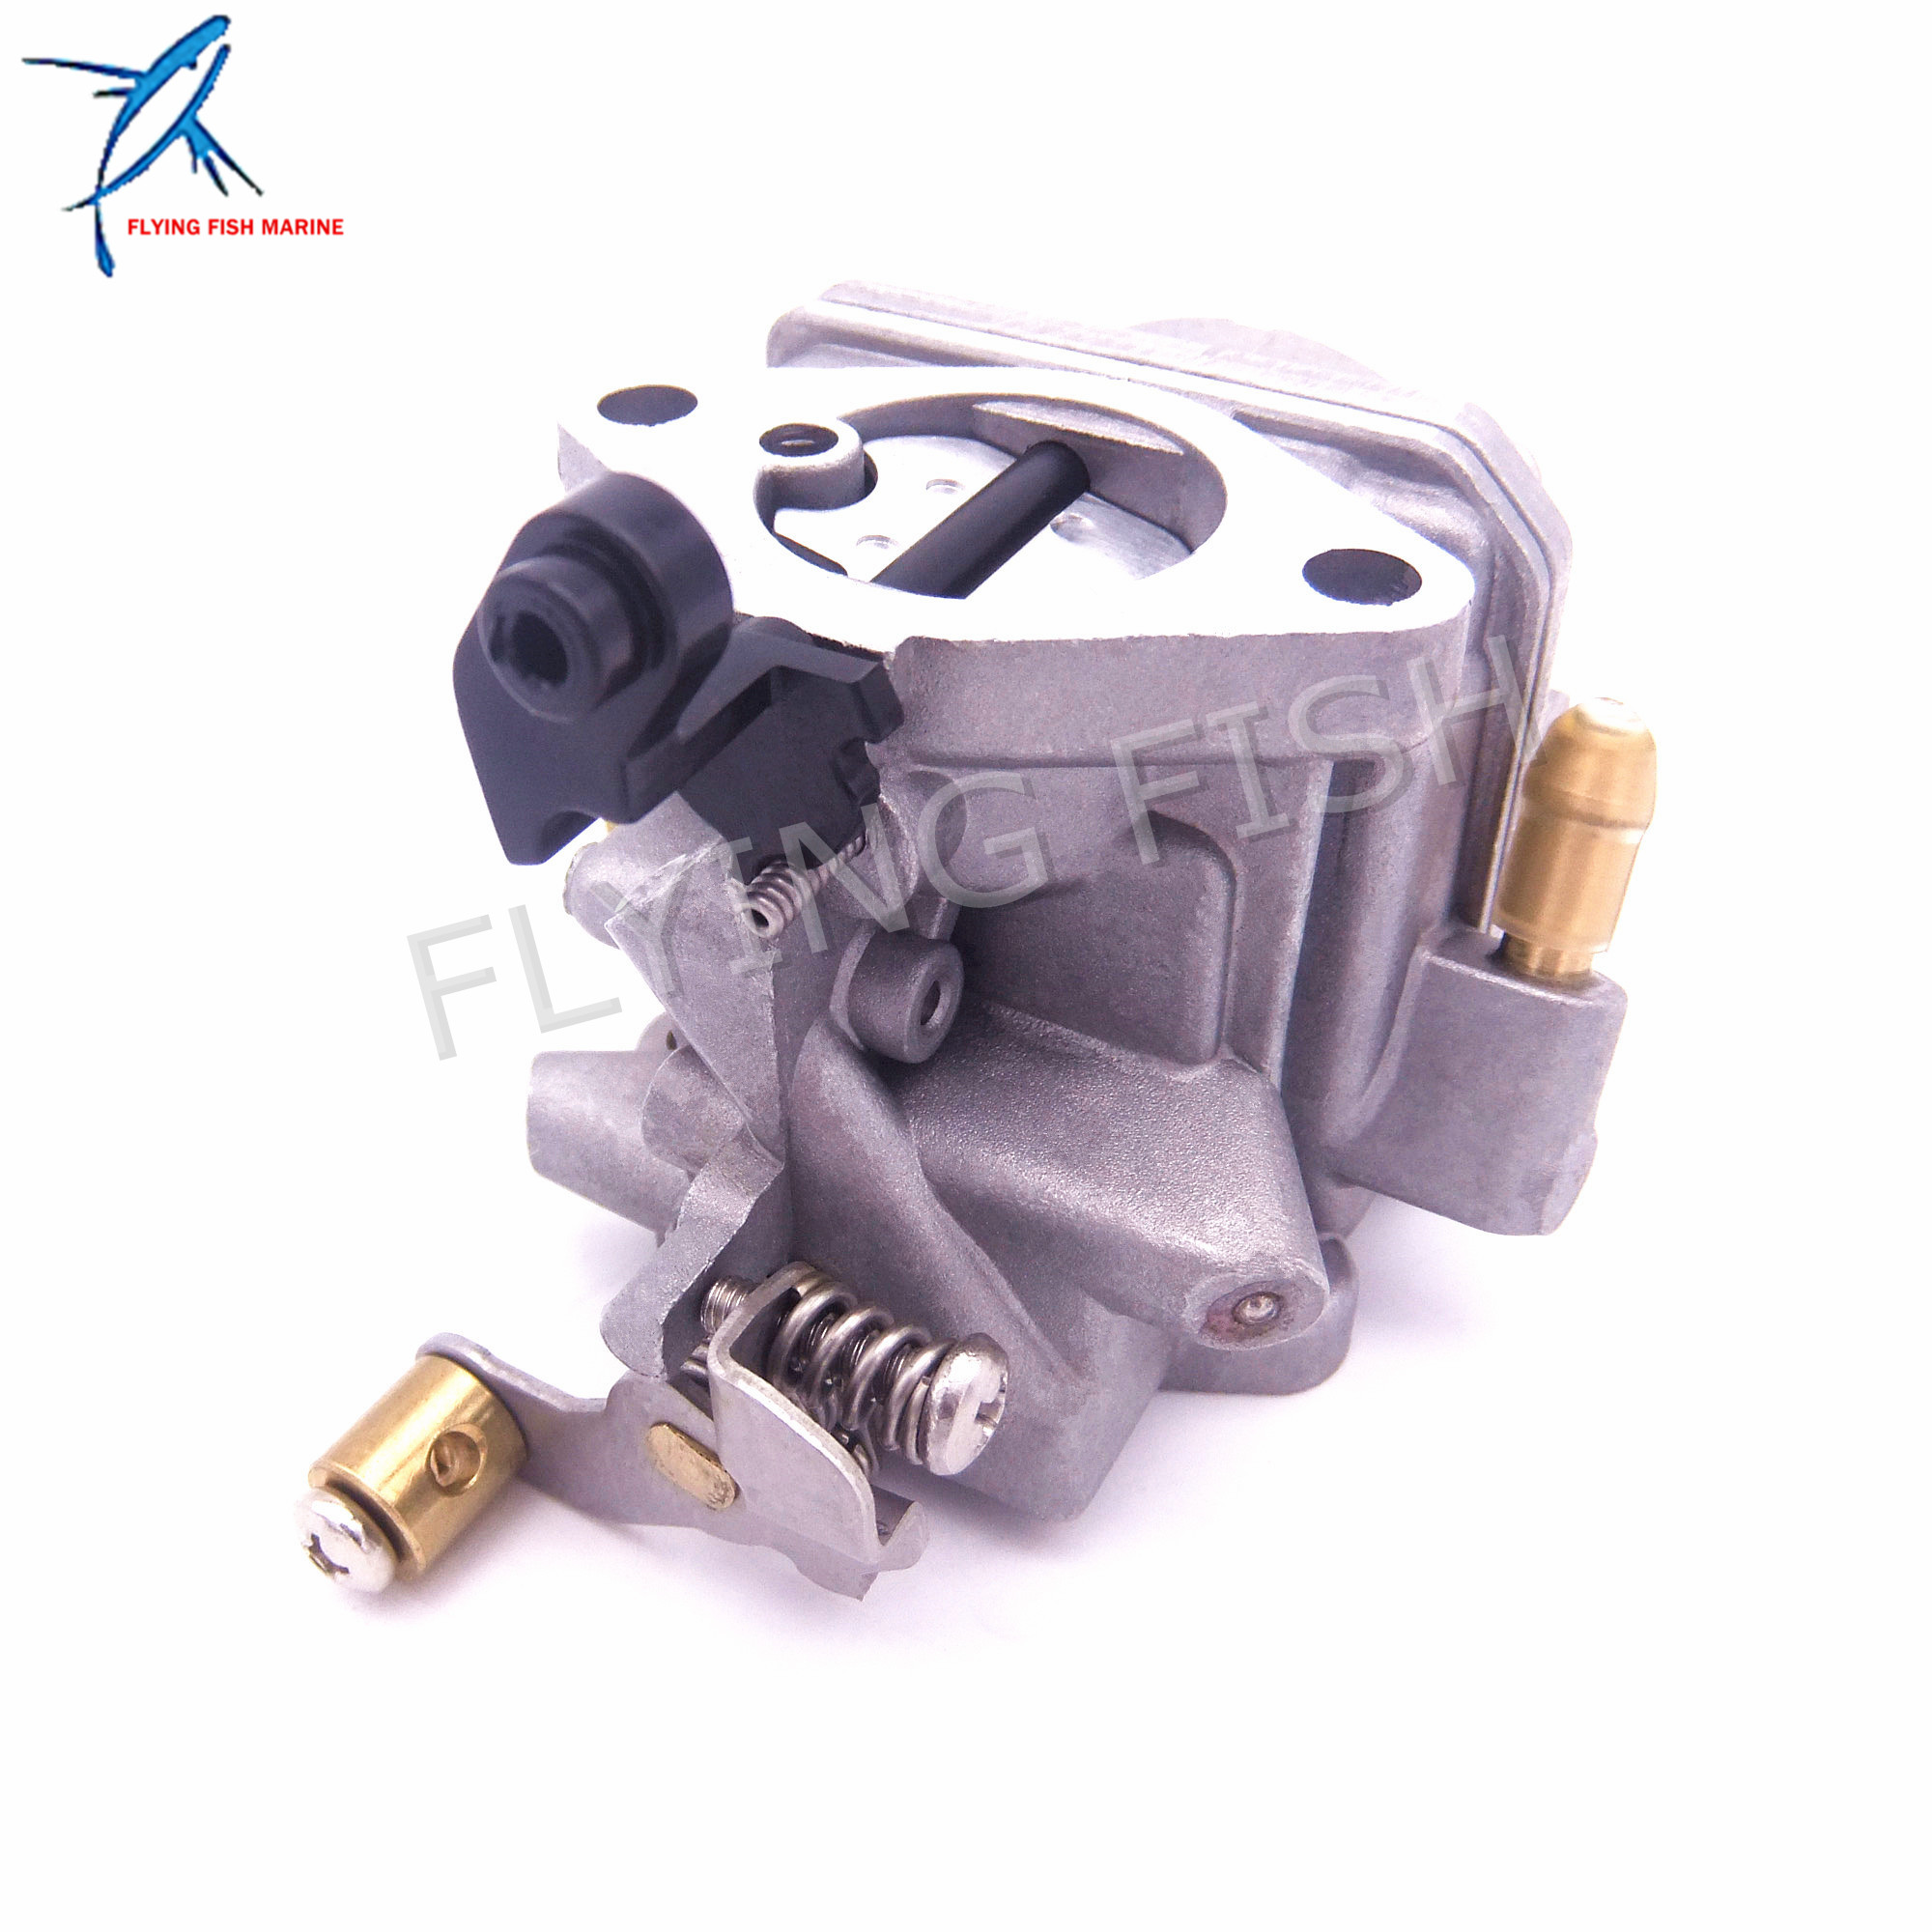 Boat Motor Carburetor Assy 6BX 14301 10 6BX 14301 11 6BX 14301 00 for Yamaha 4 stroke F6 Outboard Engine-in Boat Engine from Automobiles & Motorcycles